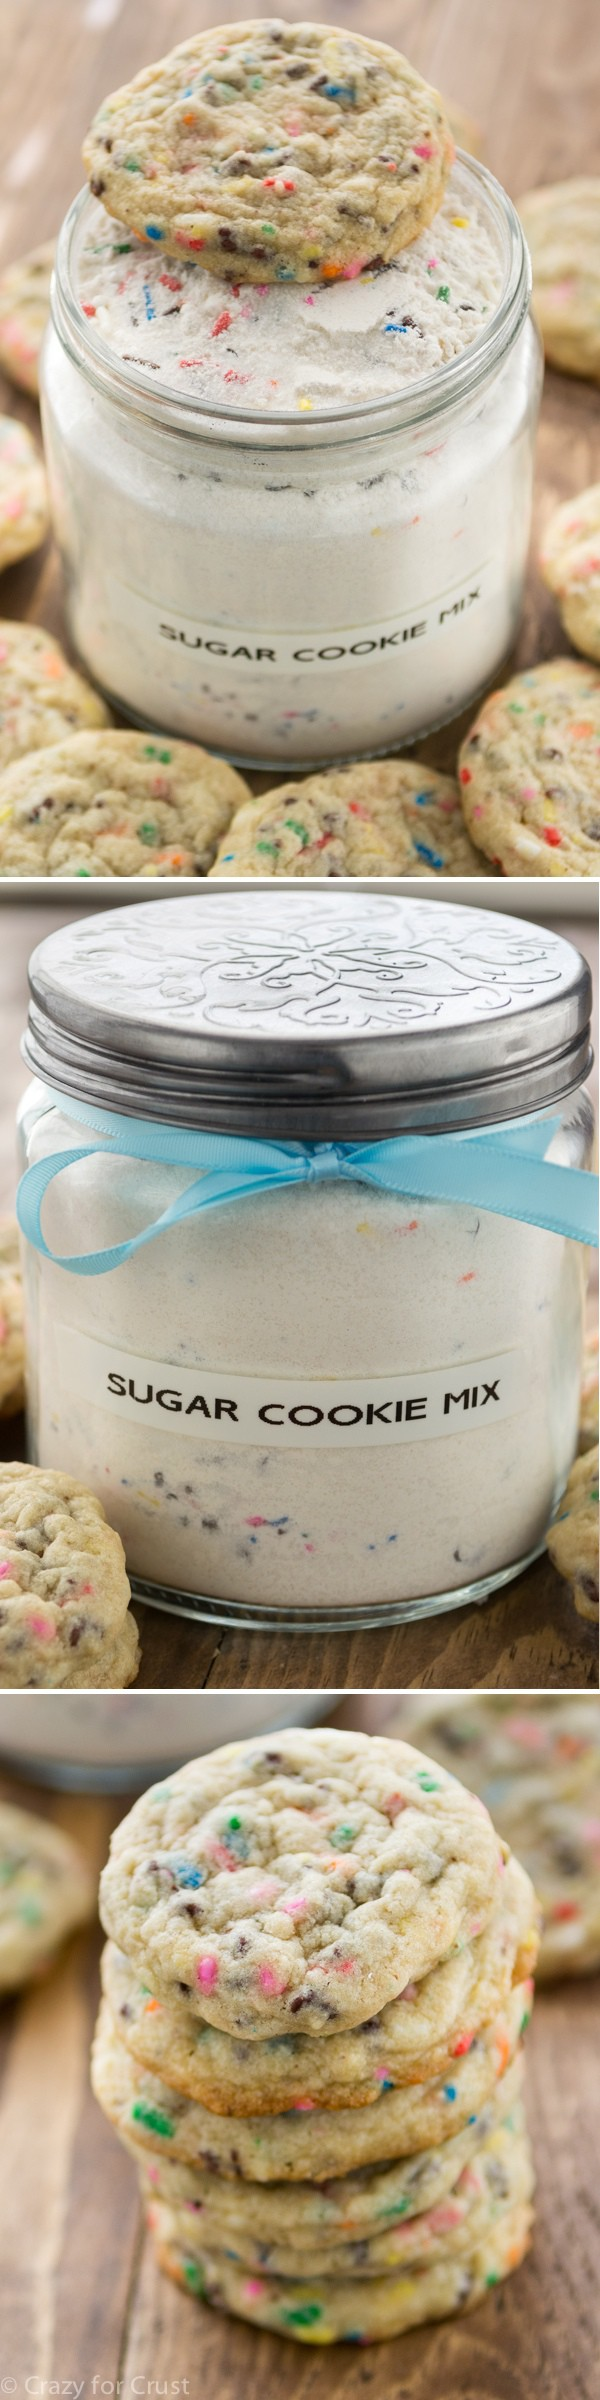 Homemade Sugar Cookie Mix is the perfect DIY gift! And it makes the best cookies!